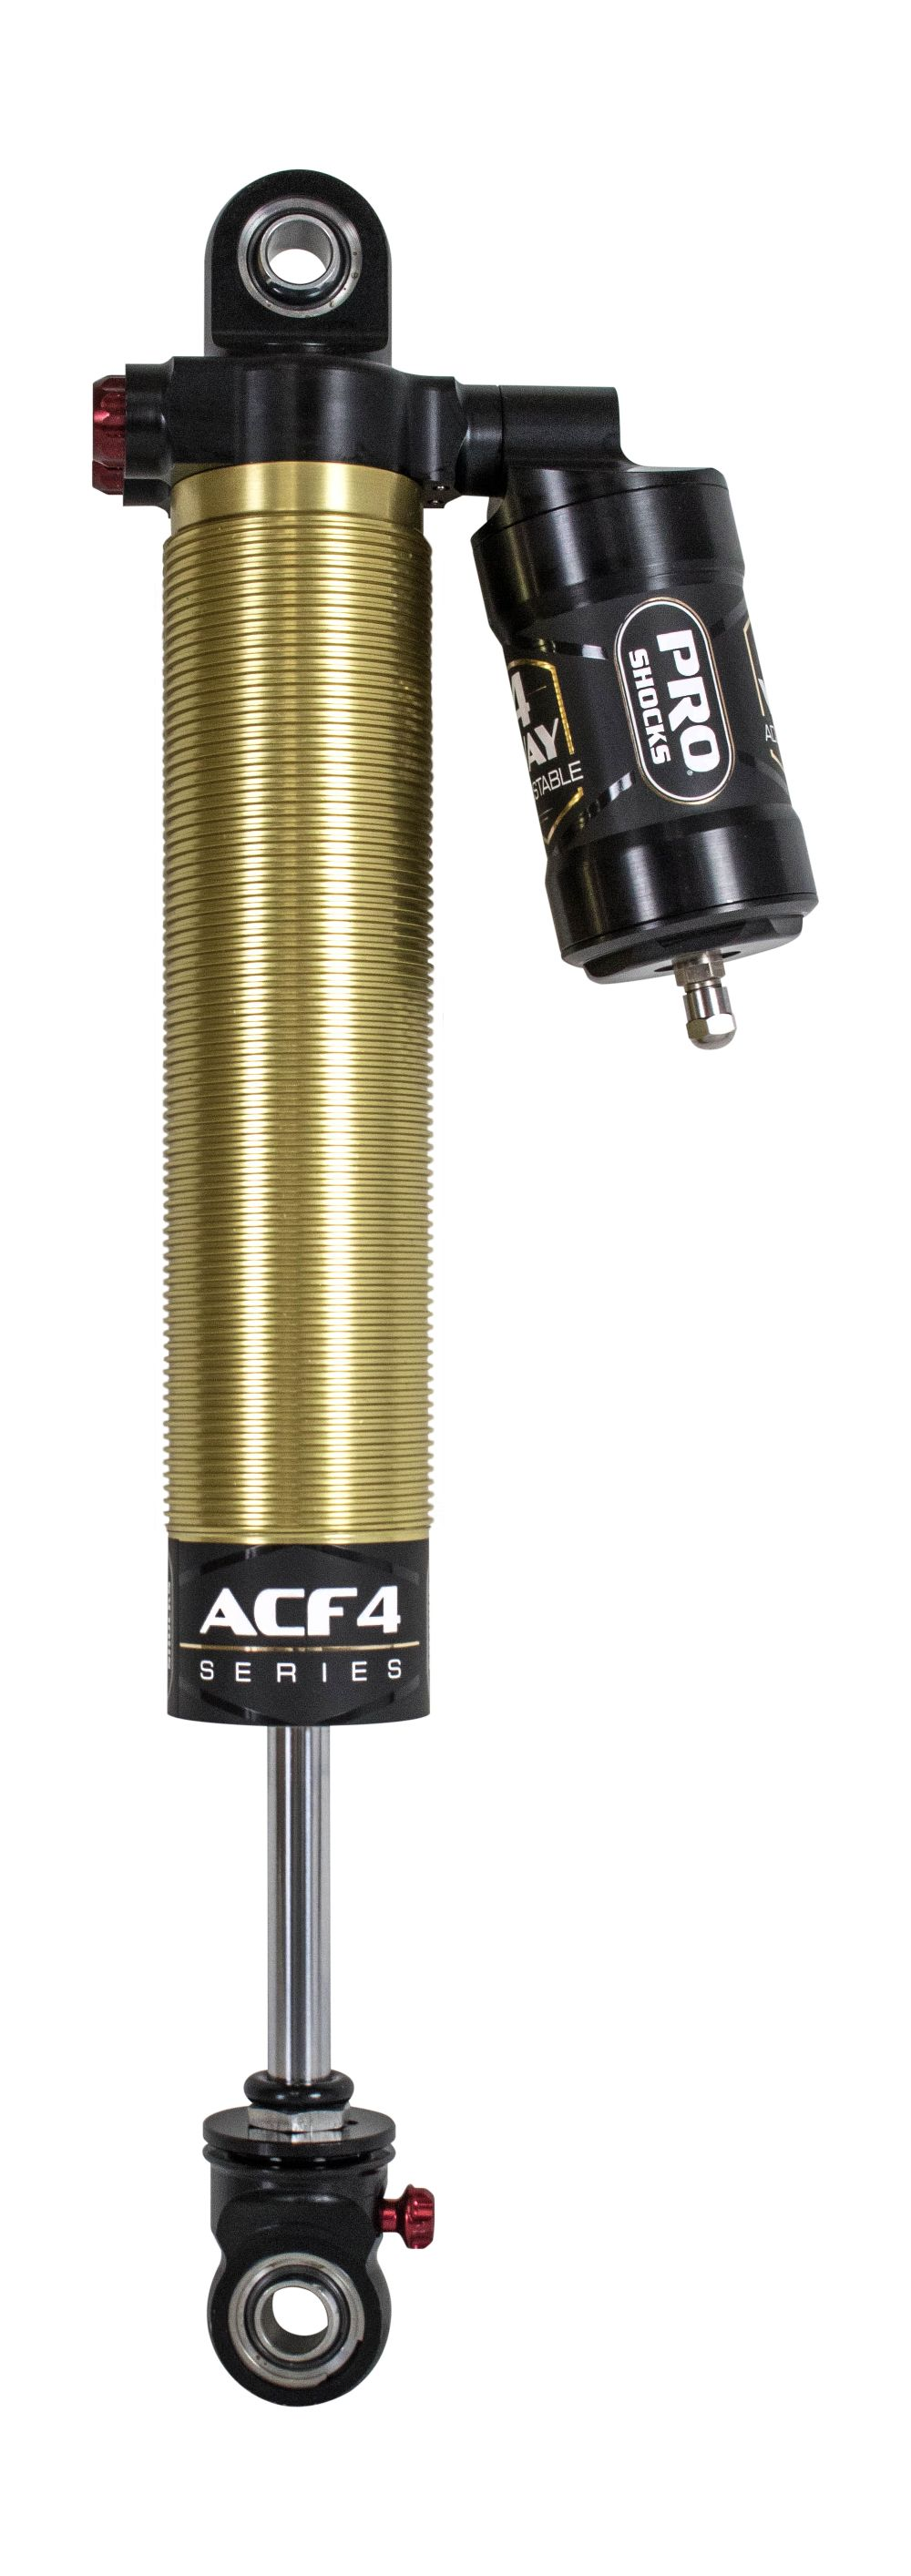 Series 4-way Adjustable Threaded Shock - Call PRO Shocks for your custom built shock!